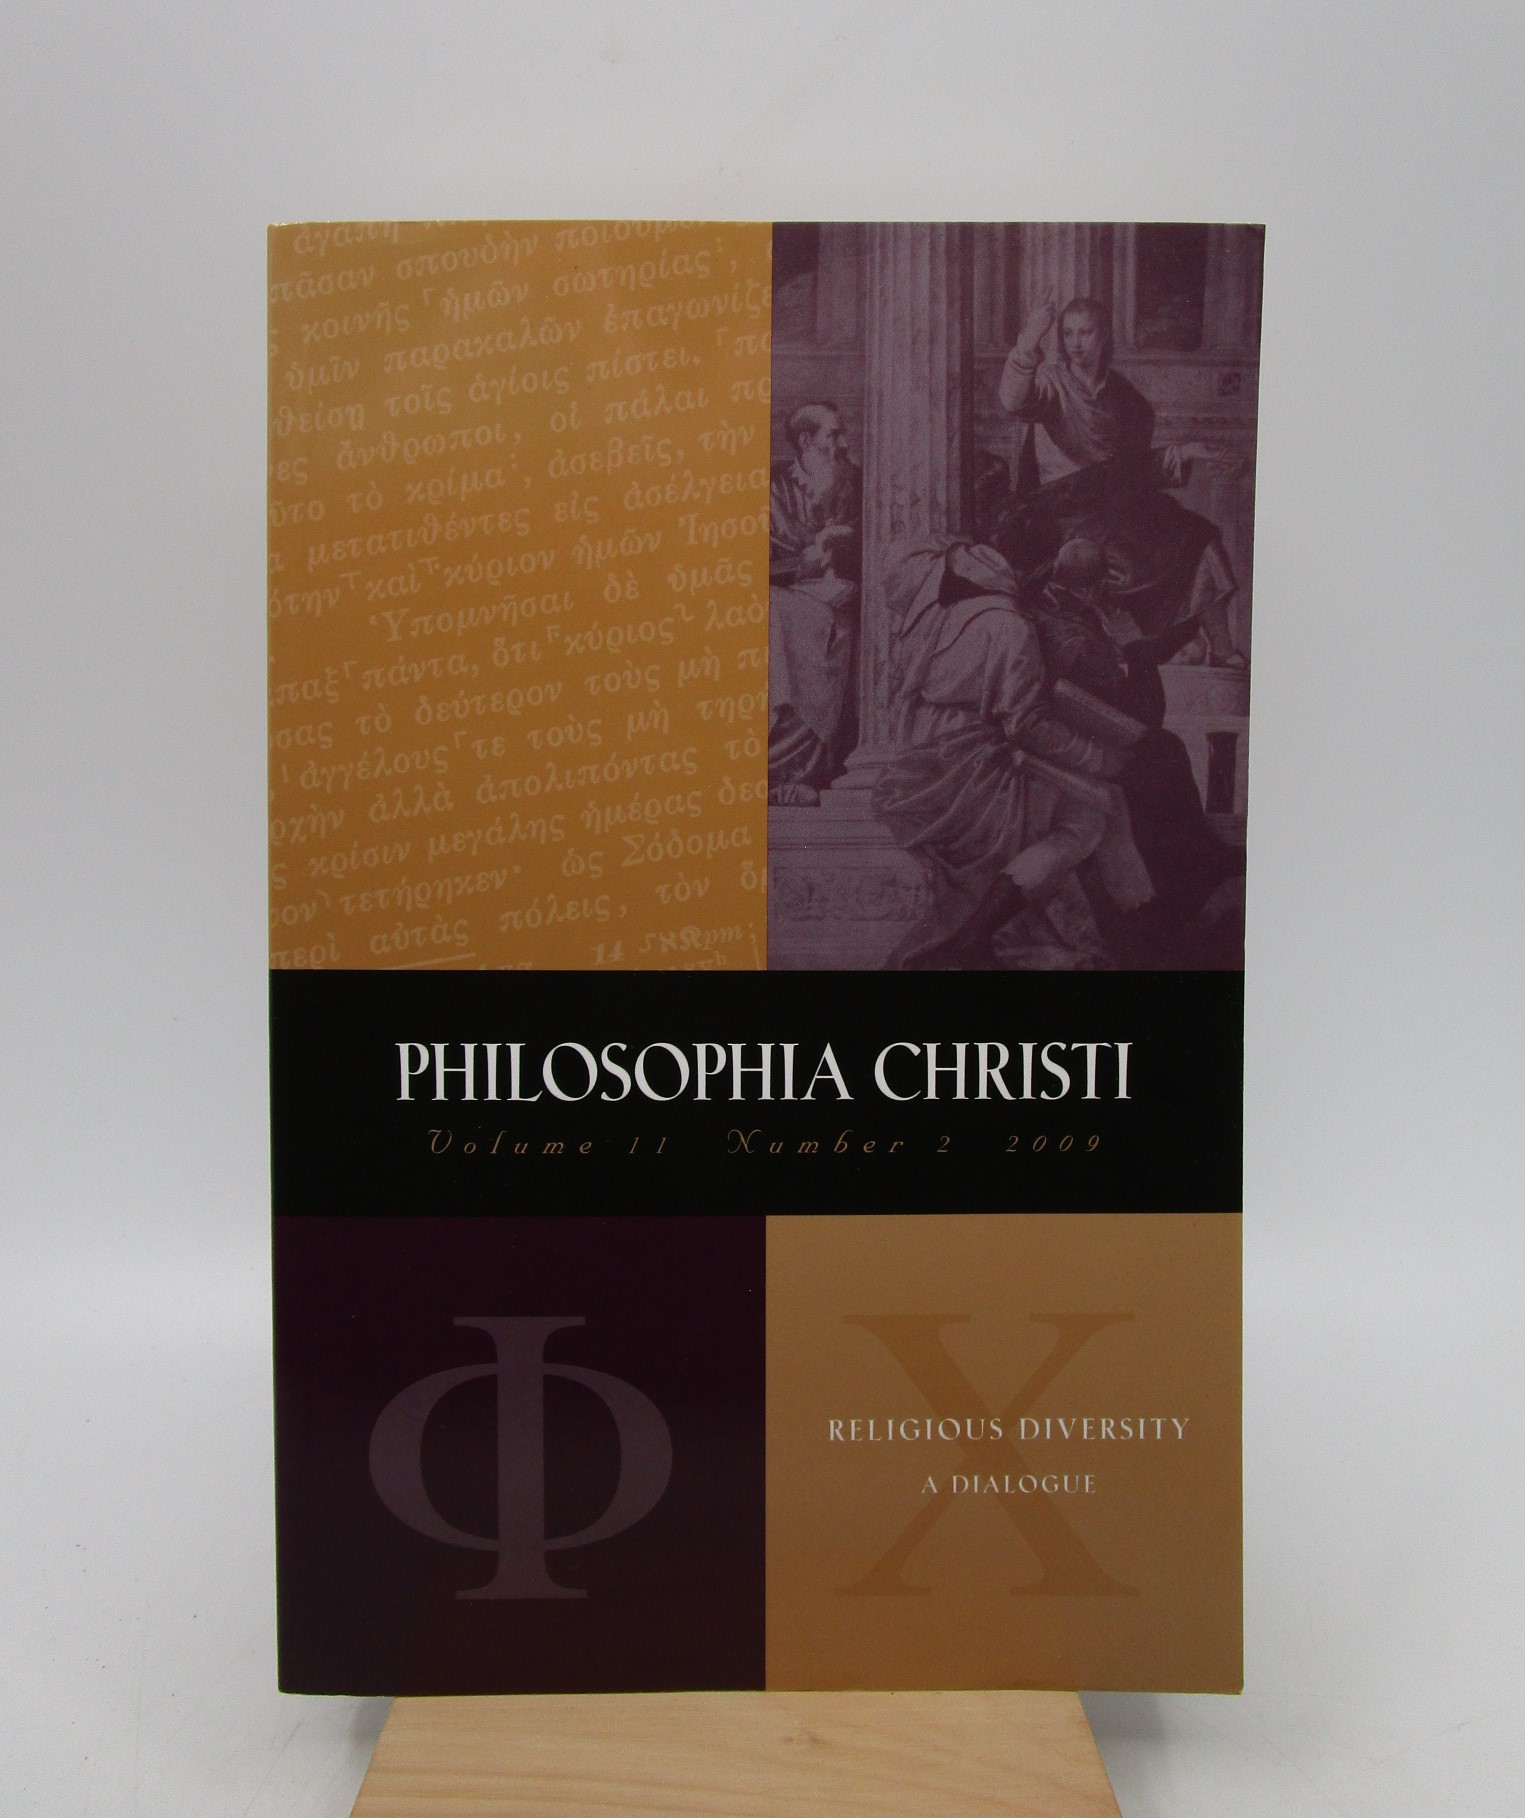 Image for Philosophia Christi Volume 11, Number 2, 2009 (First Edition)